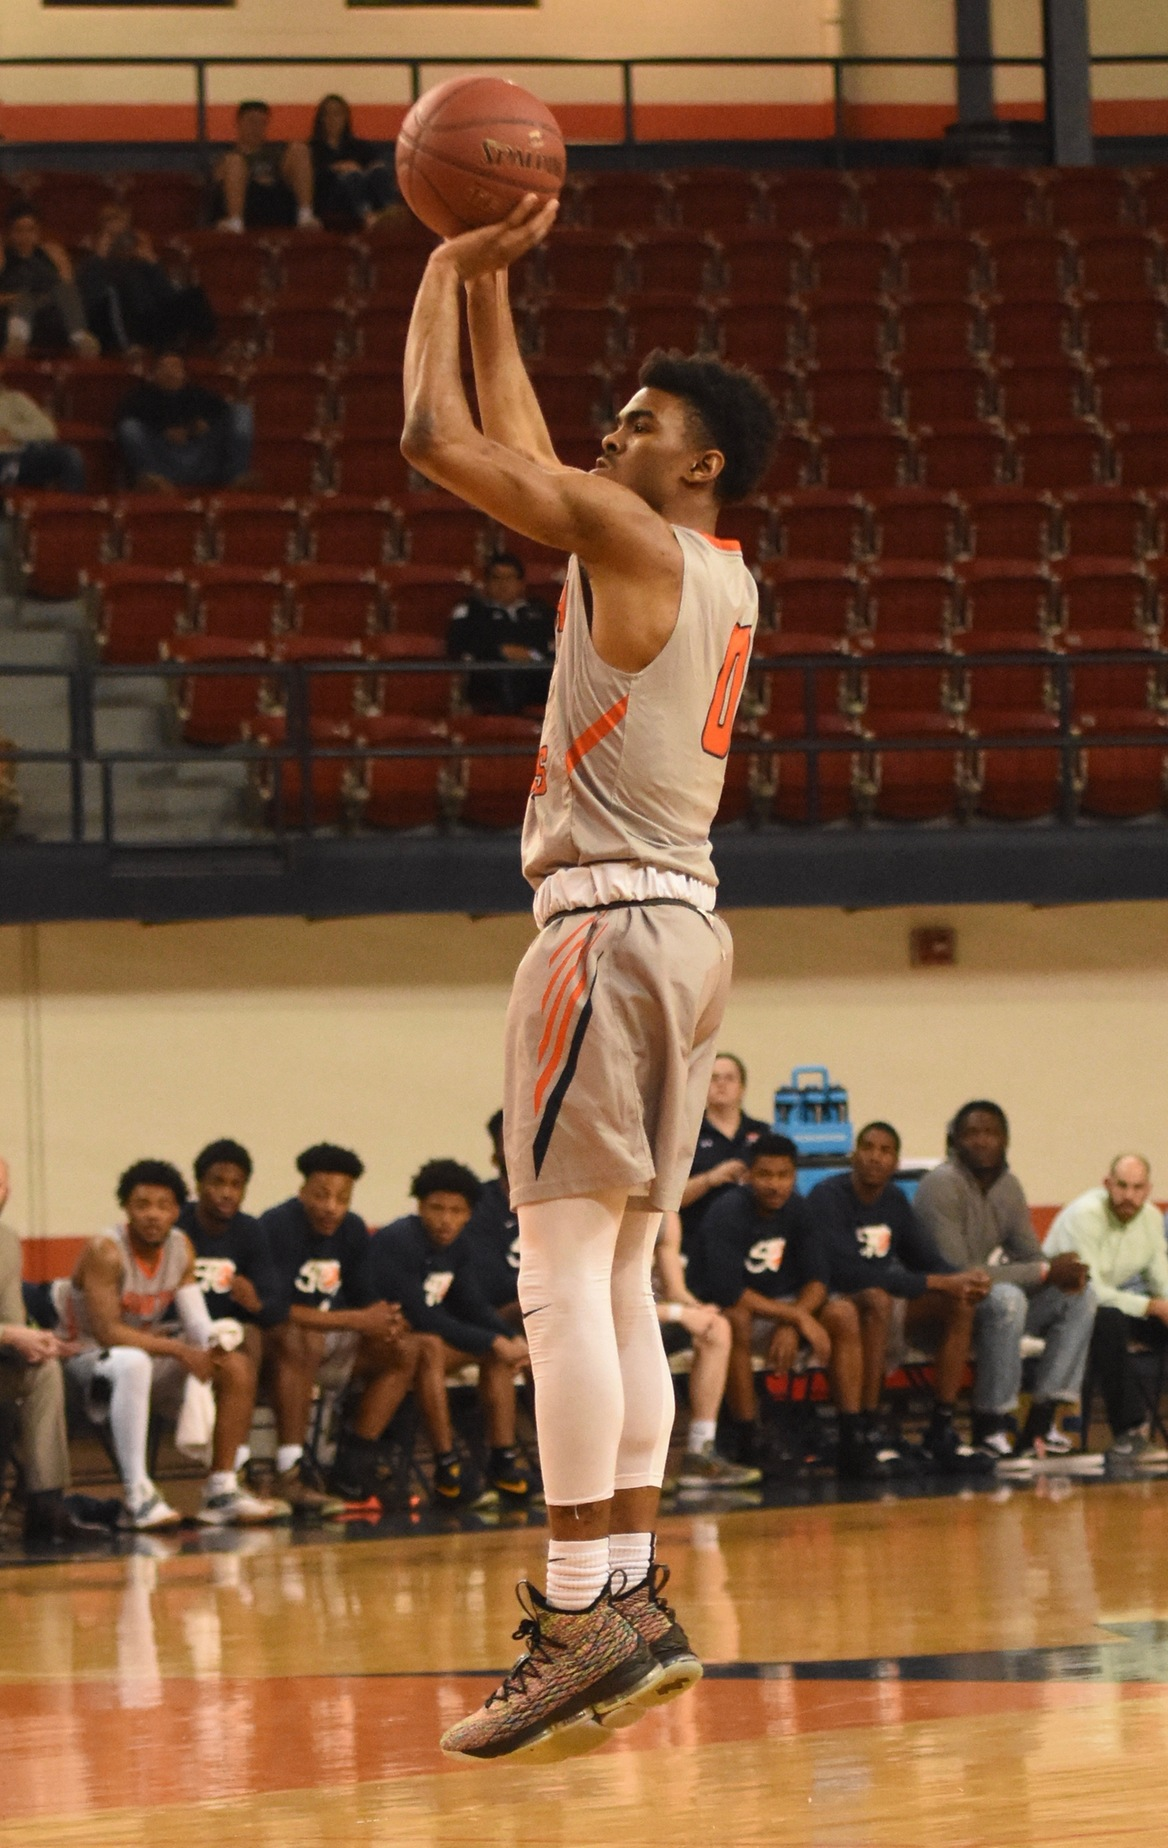 Gilbert drops in 27 points as No. 9 Texans dismantle New Mexico Military Institute 103-52 Monday